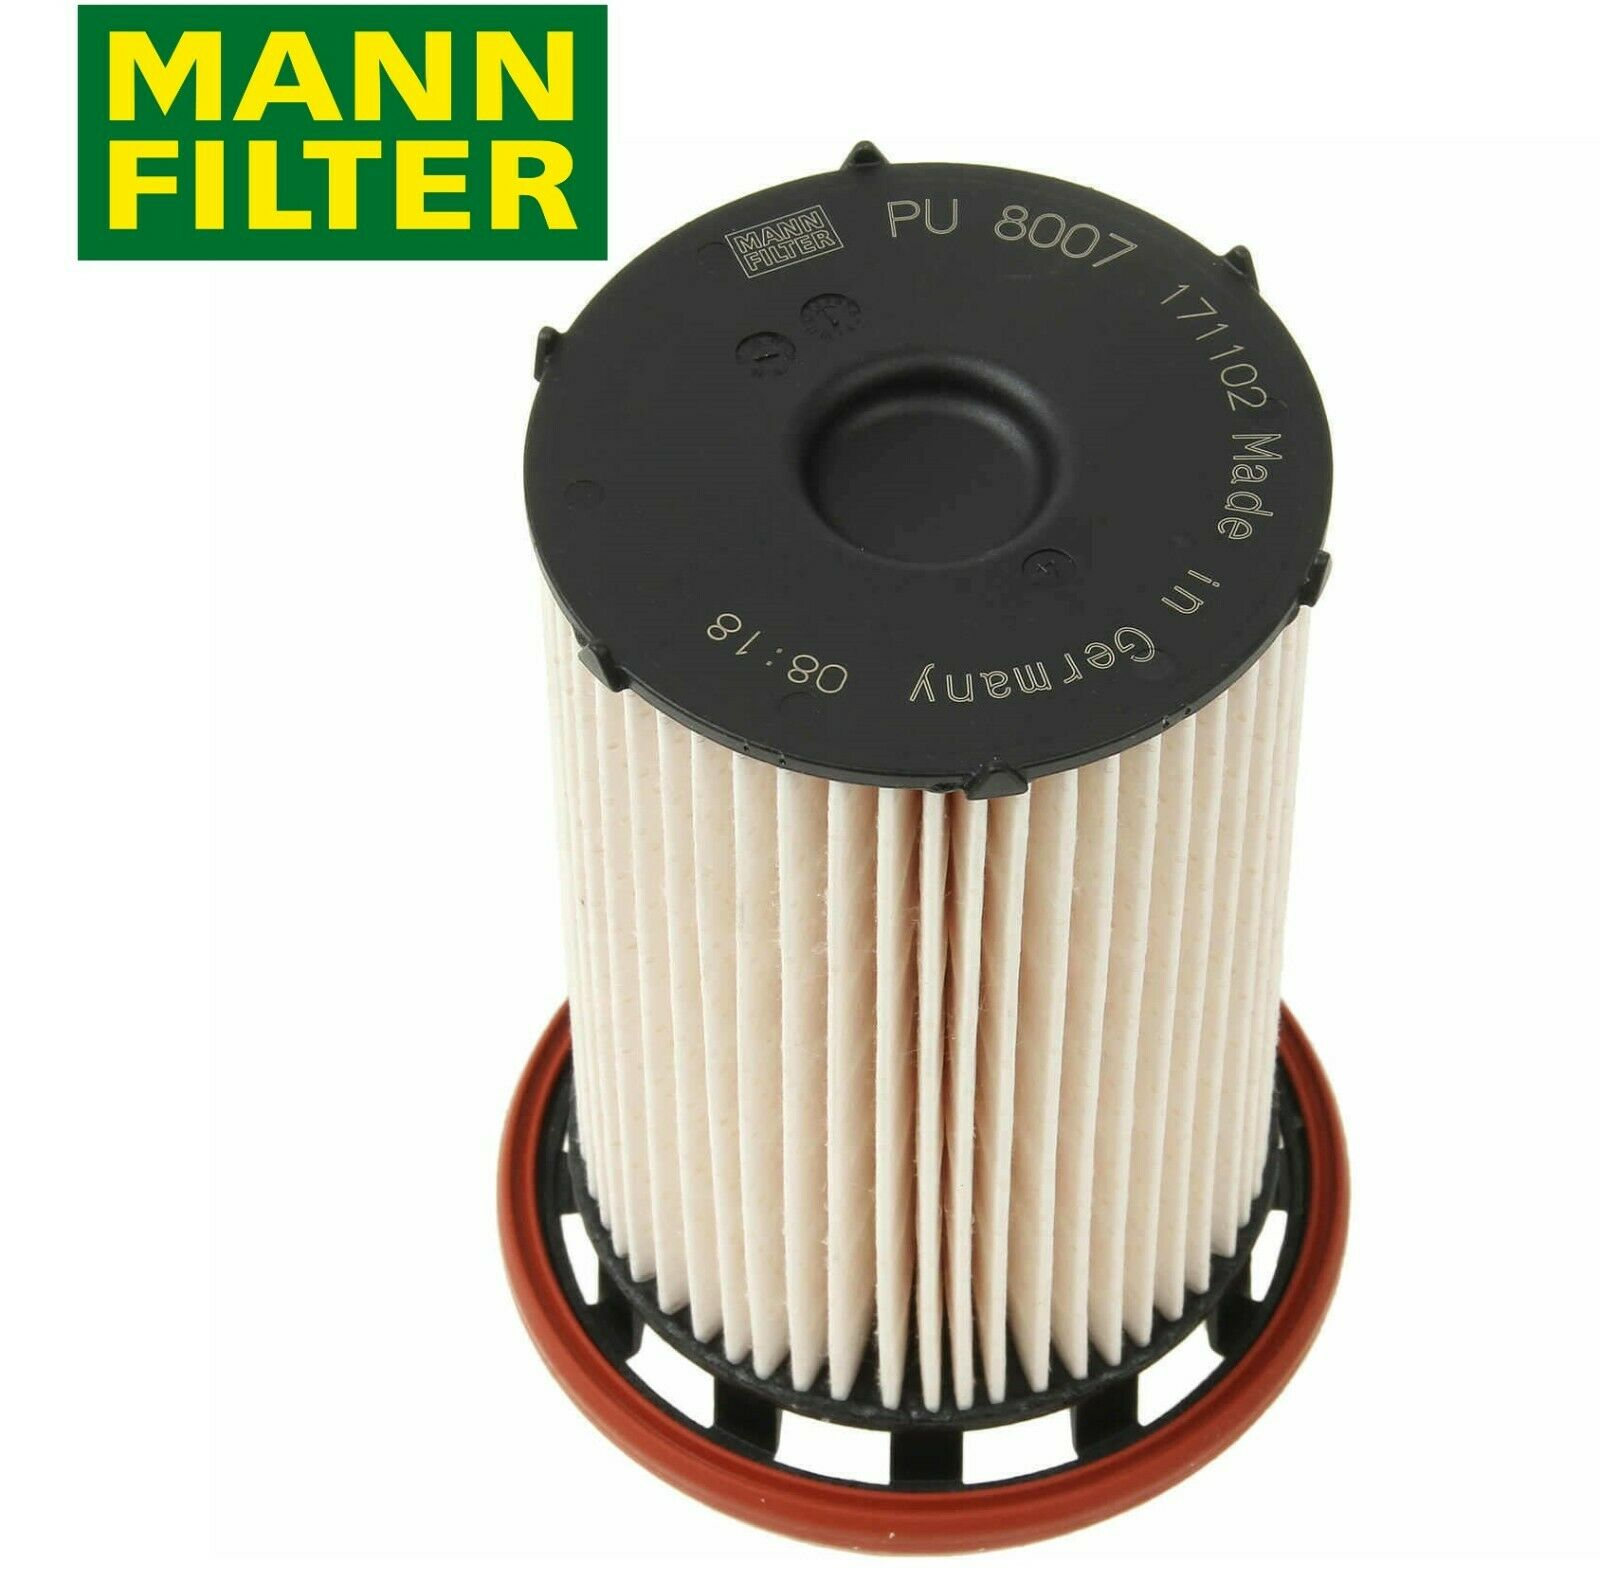 For VW Touareg TDI 2011-2014 Fuel Filter Mann PU 8007 7P6 127 177 A